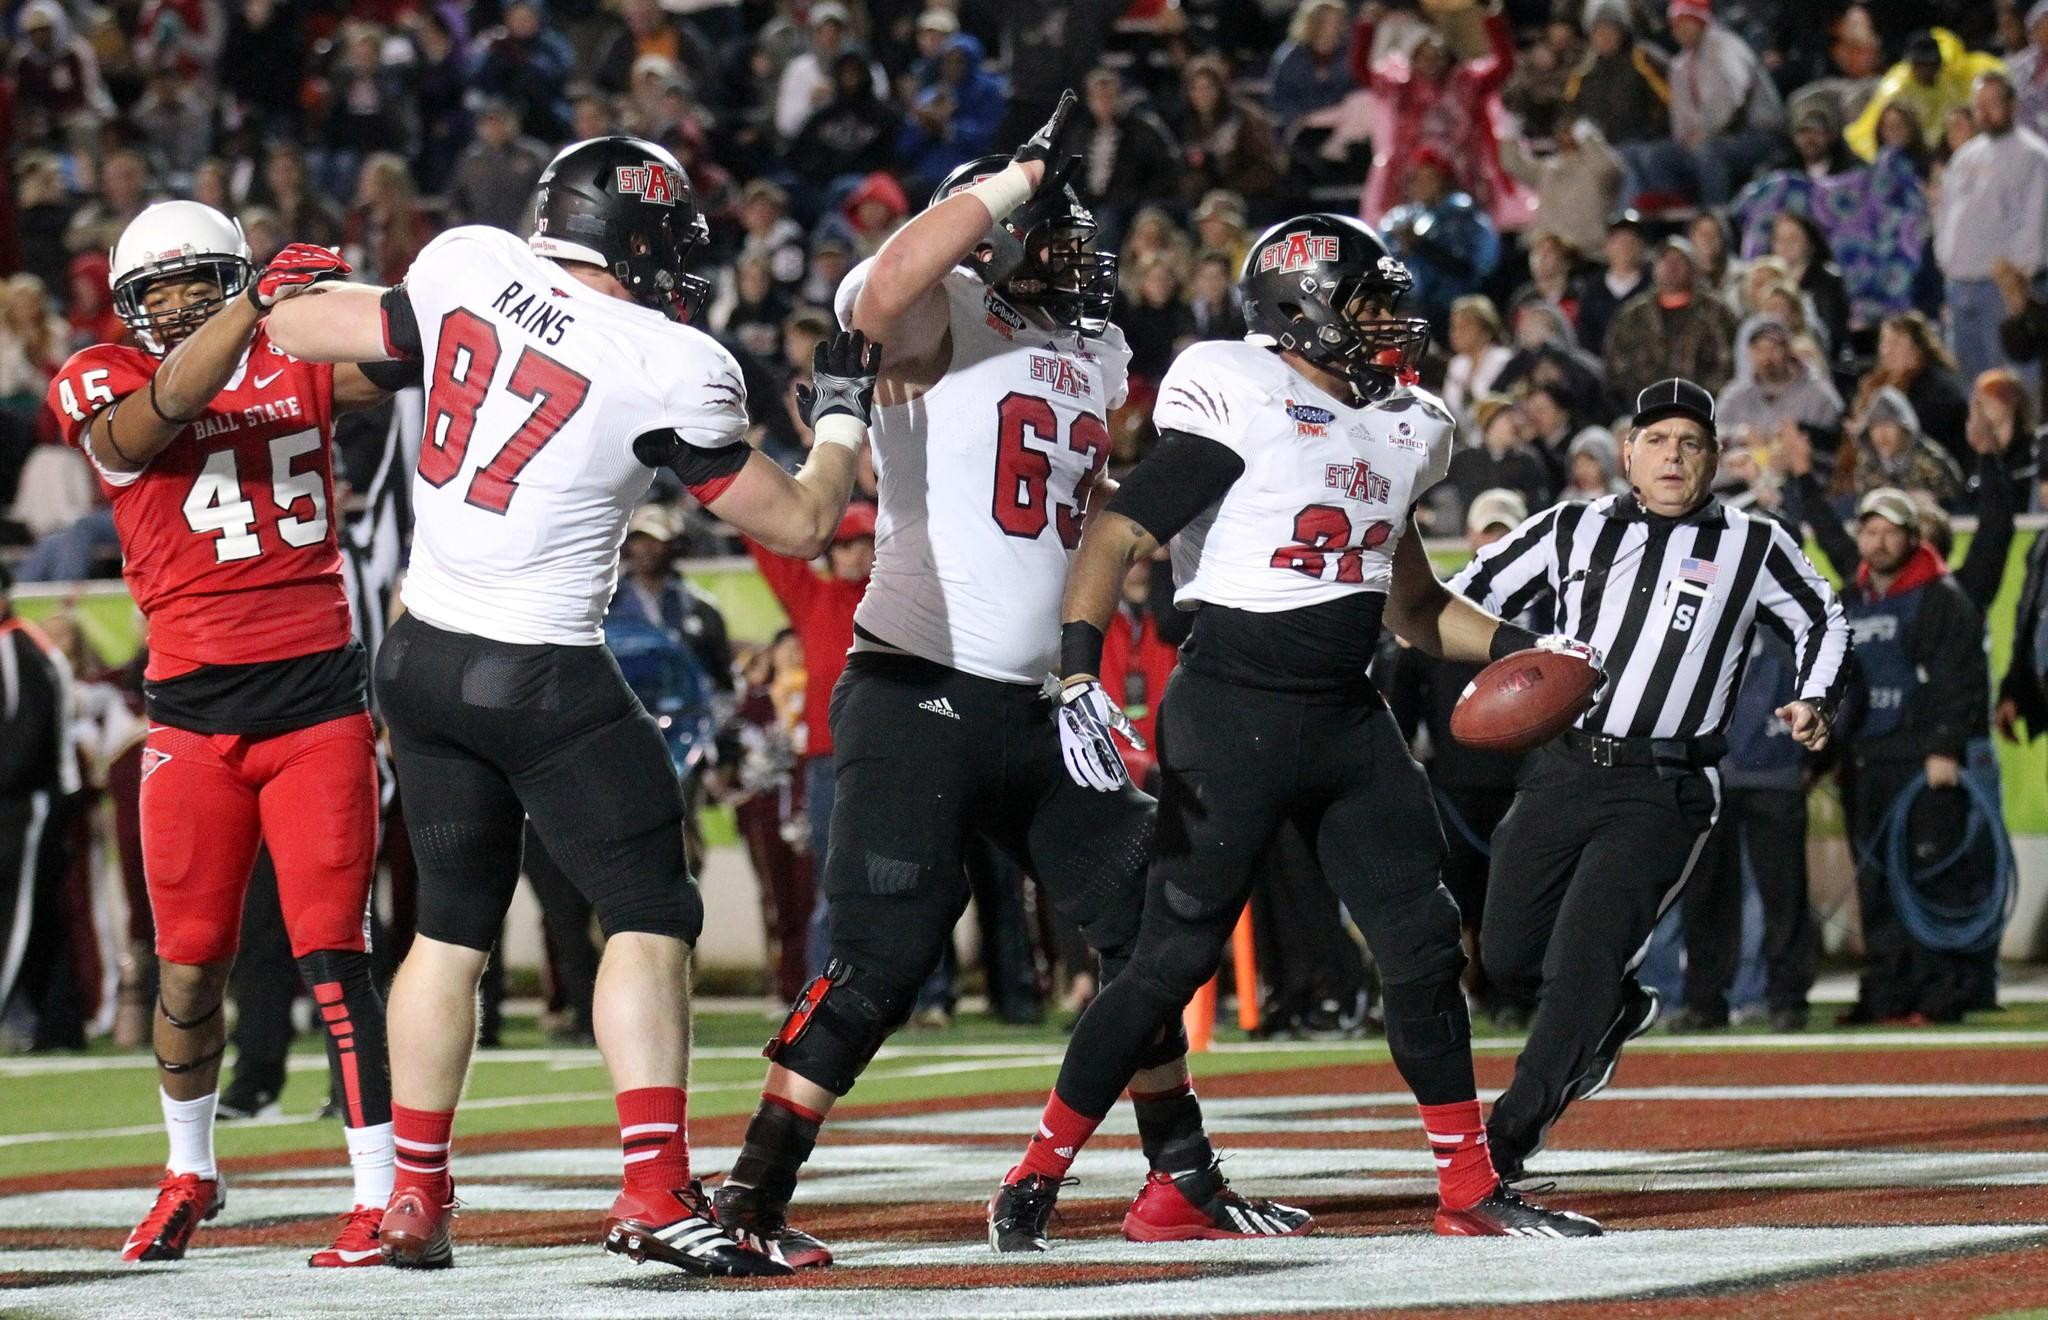 Arkansas State running back Sirgregory Thornton is congratulated by offensive linesman Cliff Mitchell and teammates after scoring a touchdown in the first half.